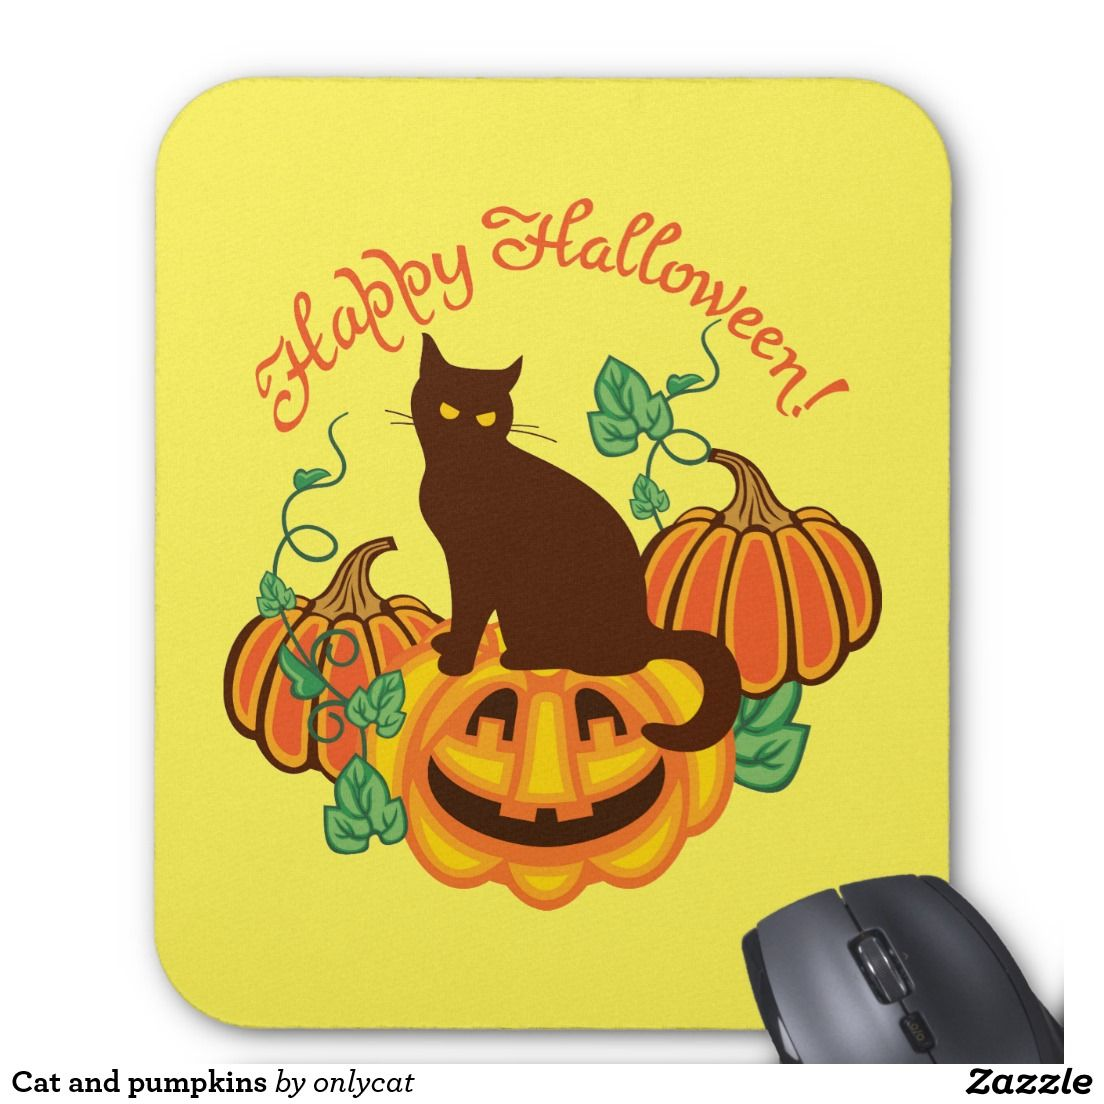 Cat and pumpkins mouse pad